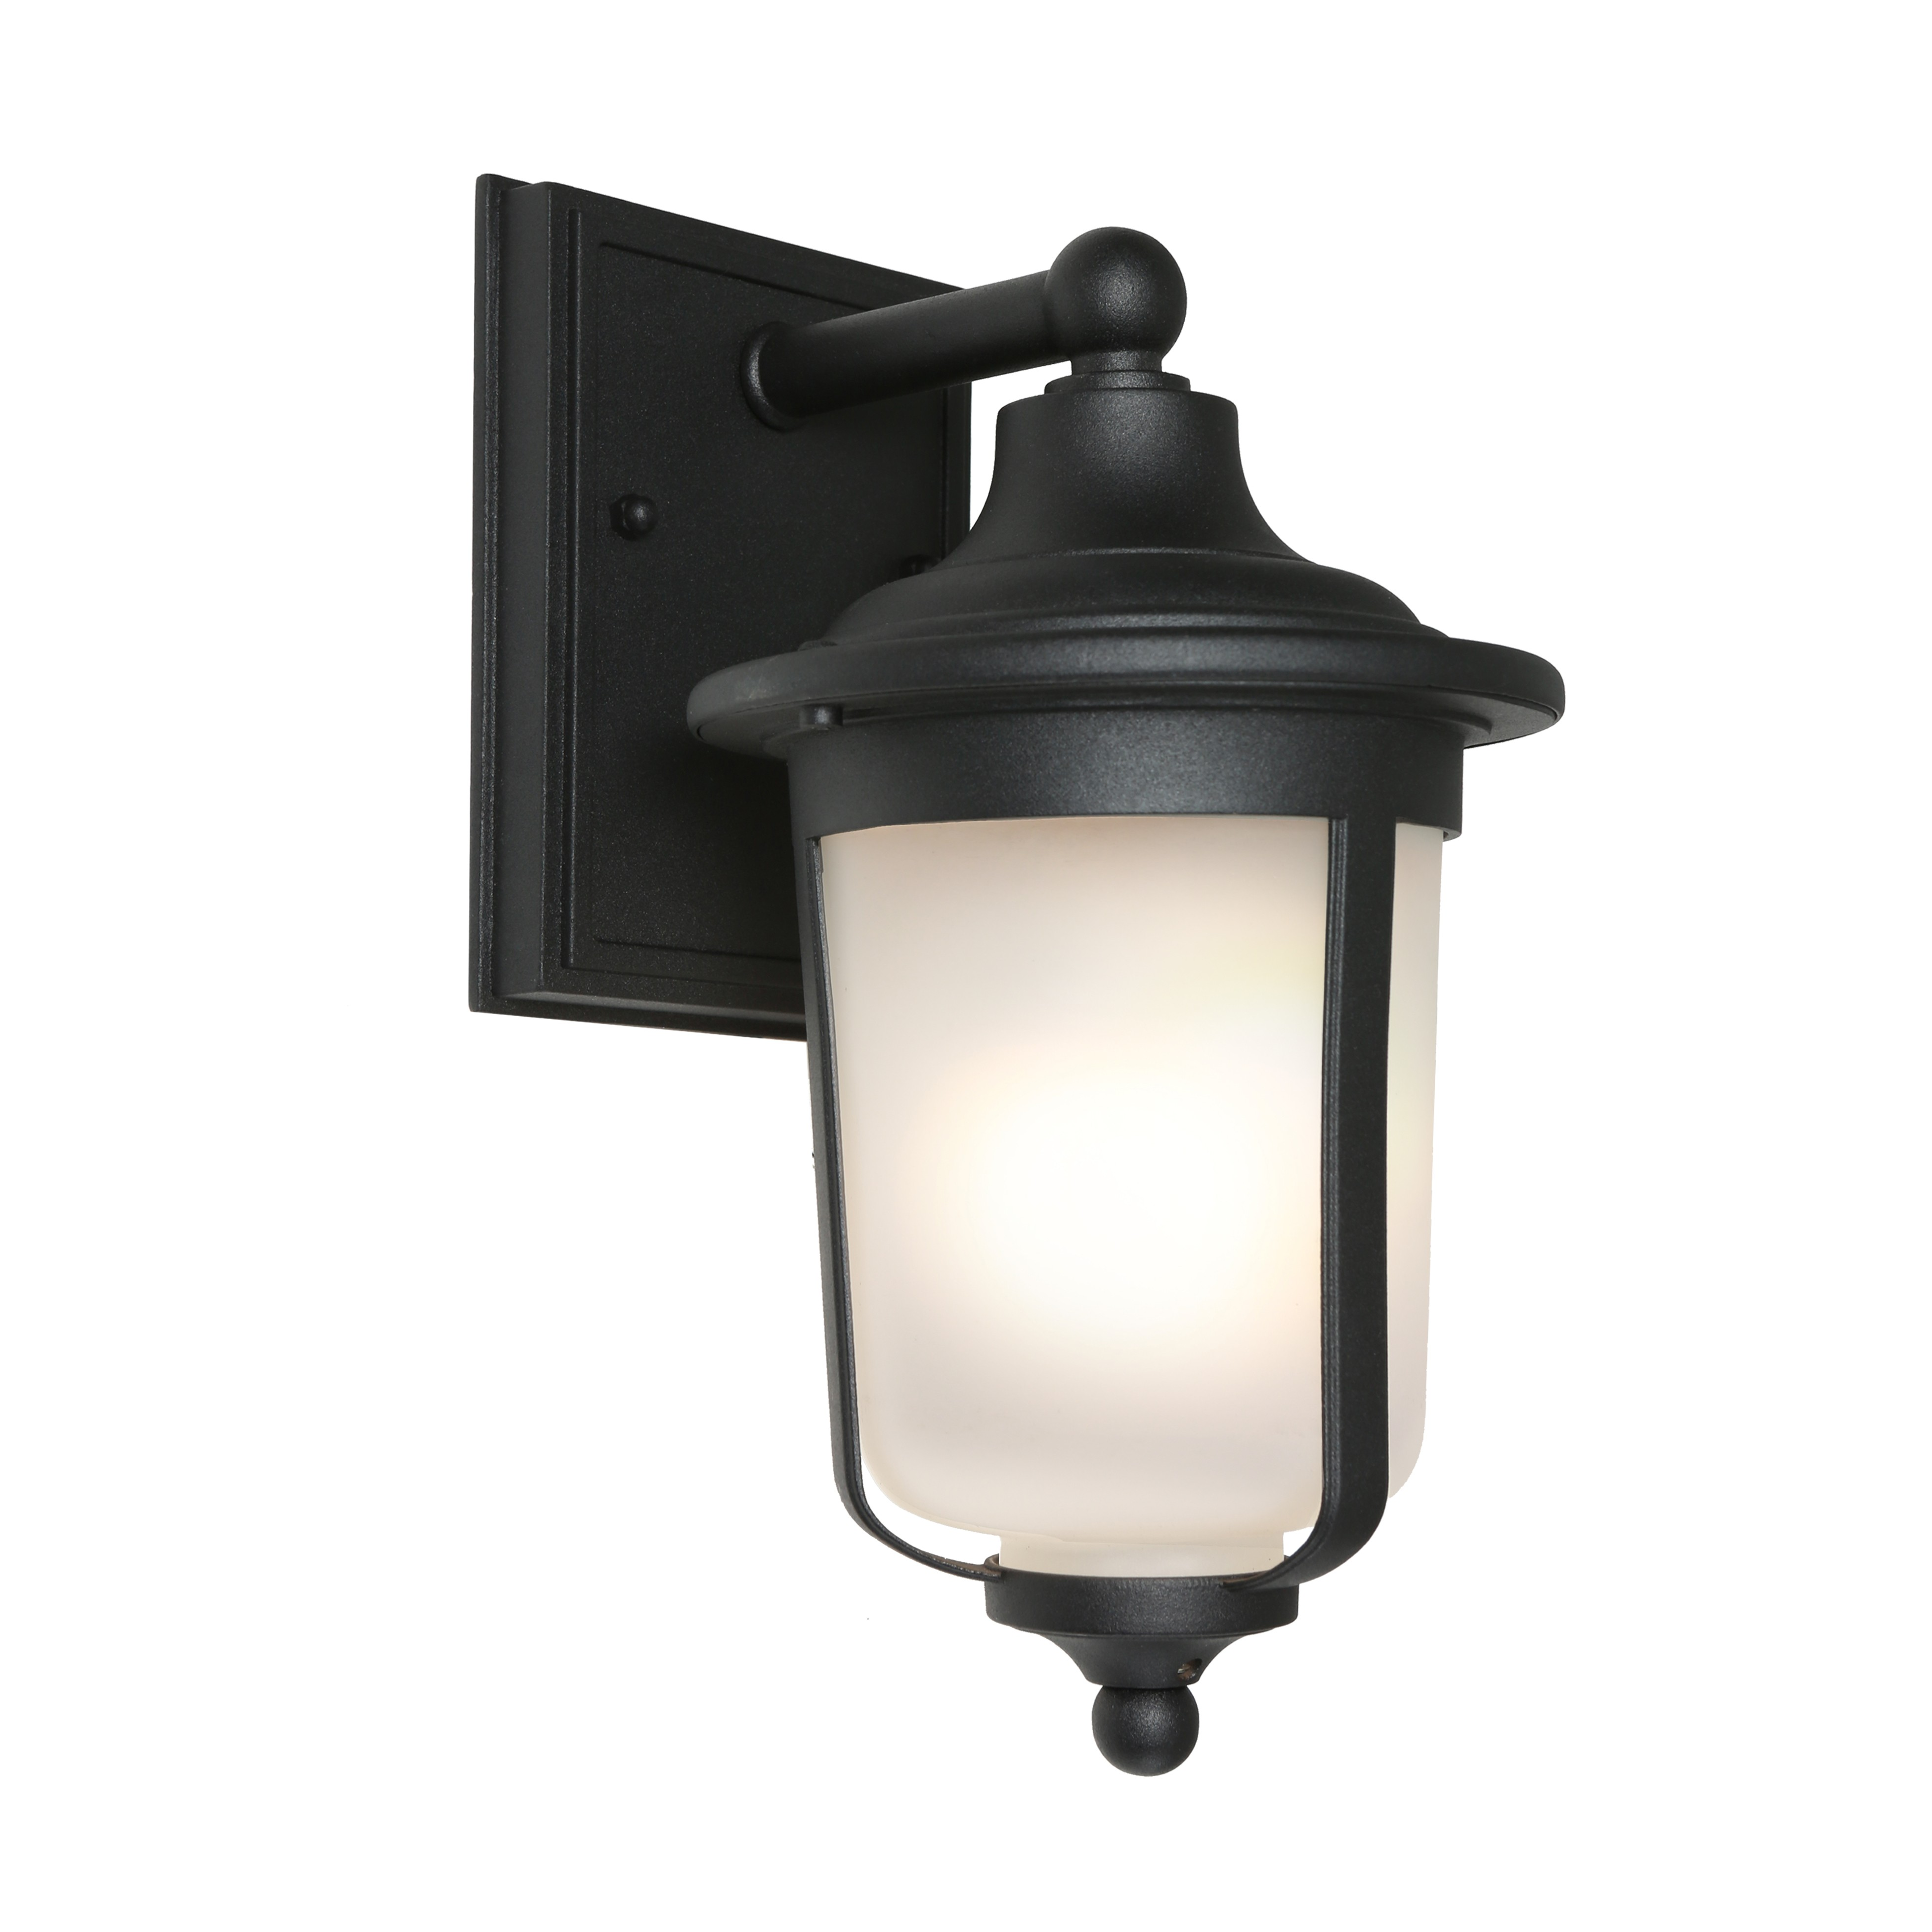 Devon Commercial Grade IP44 Exterior Wall Lantern, Black